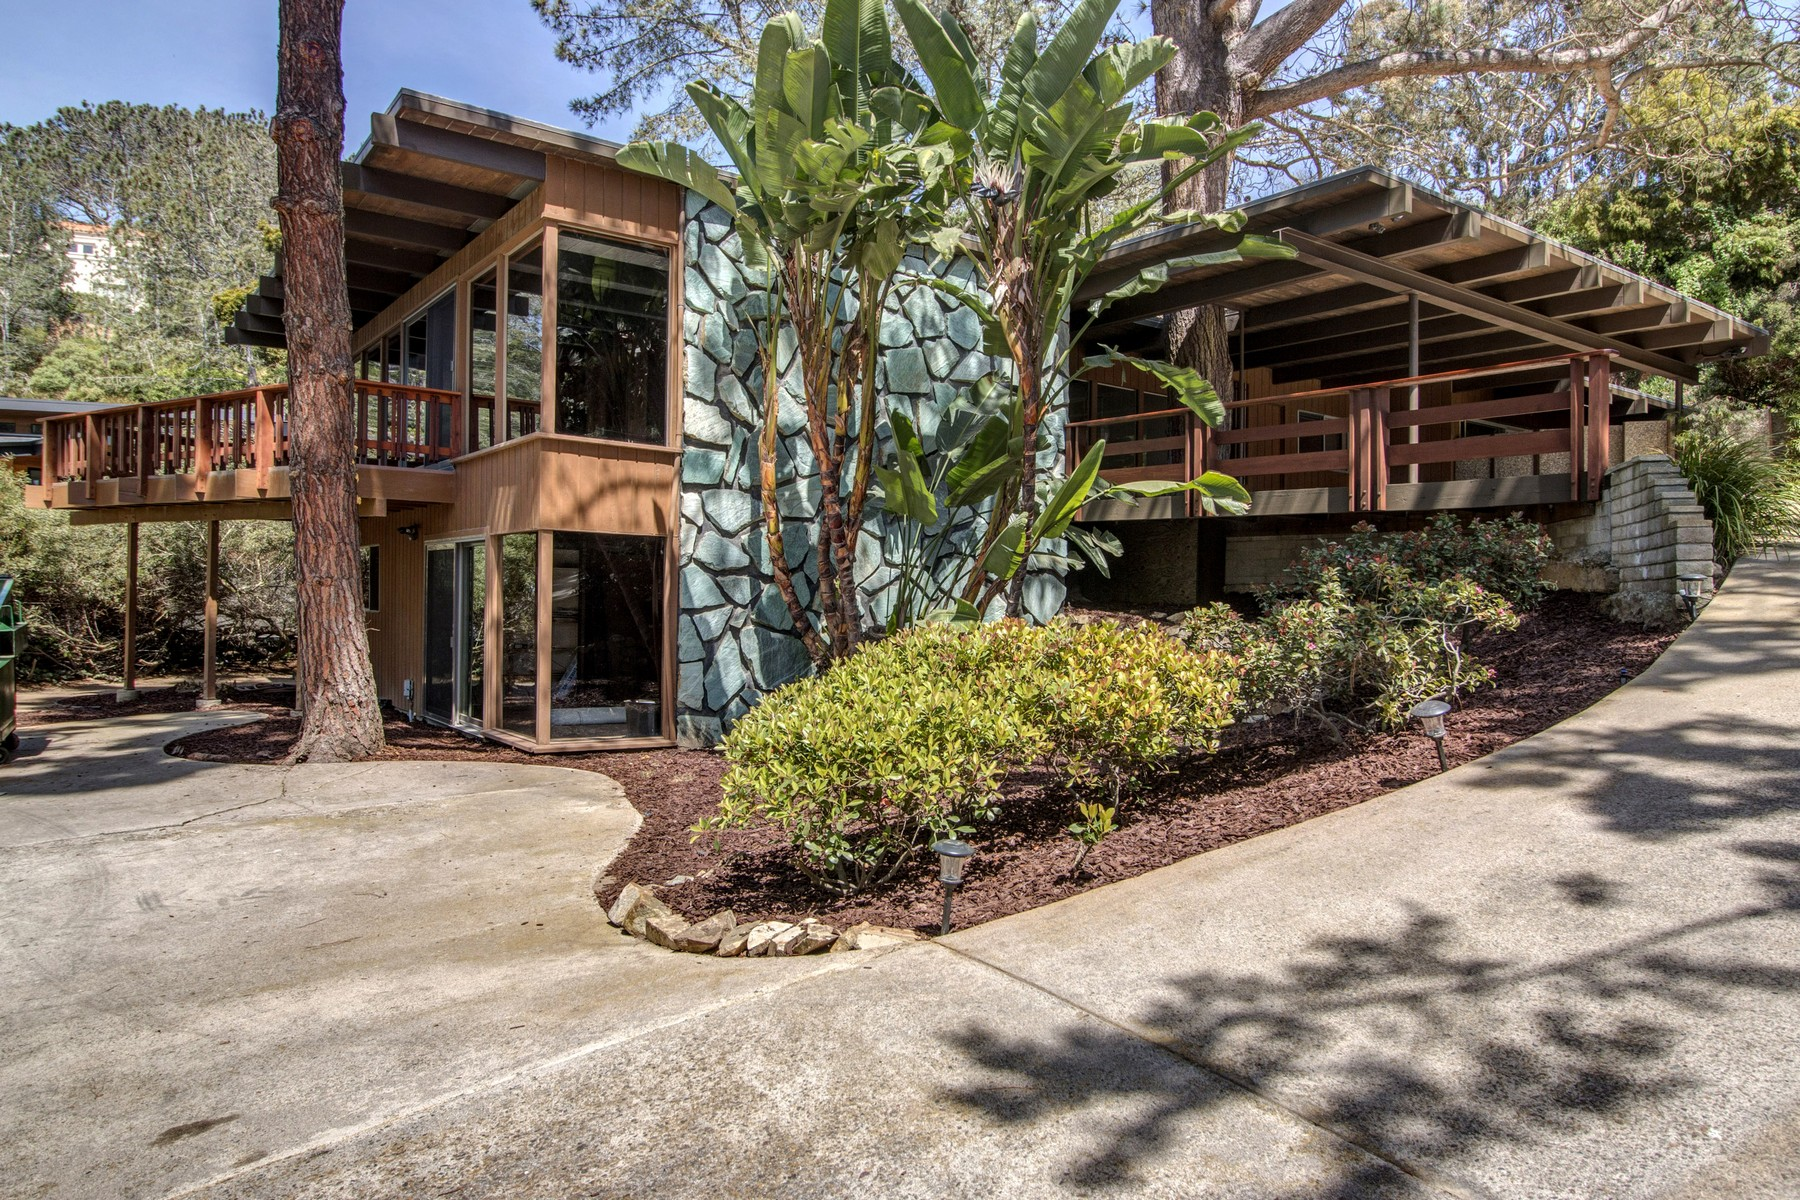 Single Family Home for Sale at 437 Pine Needles Drive Del Mar, California 92014 United States